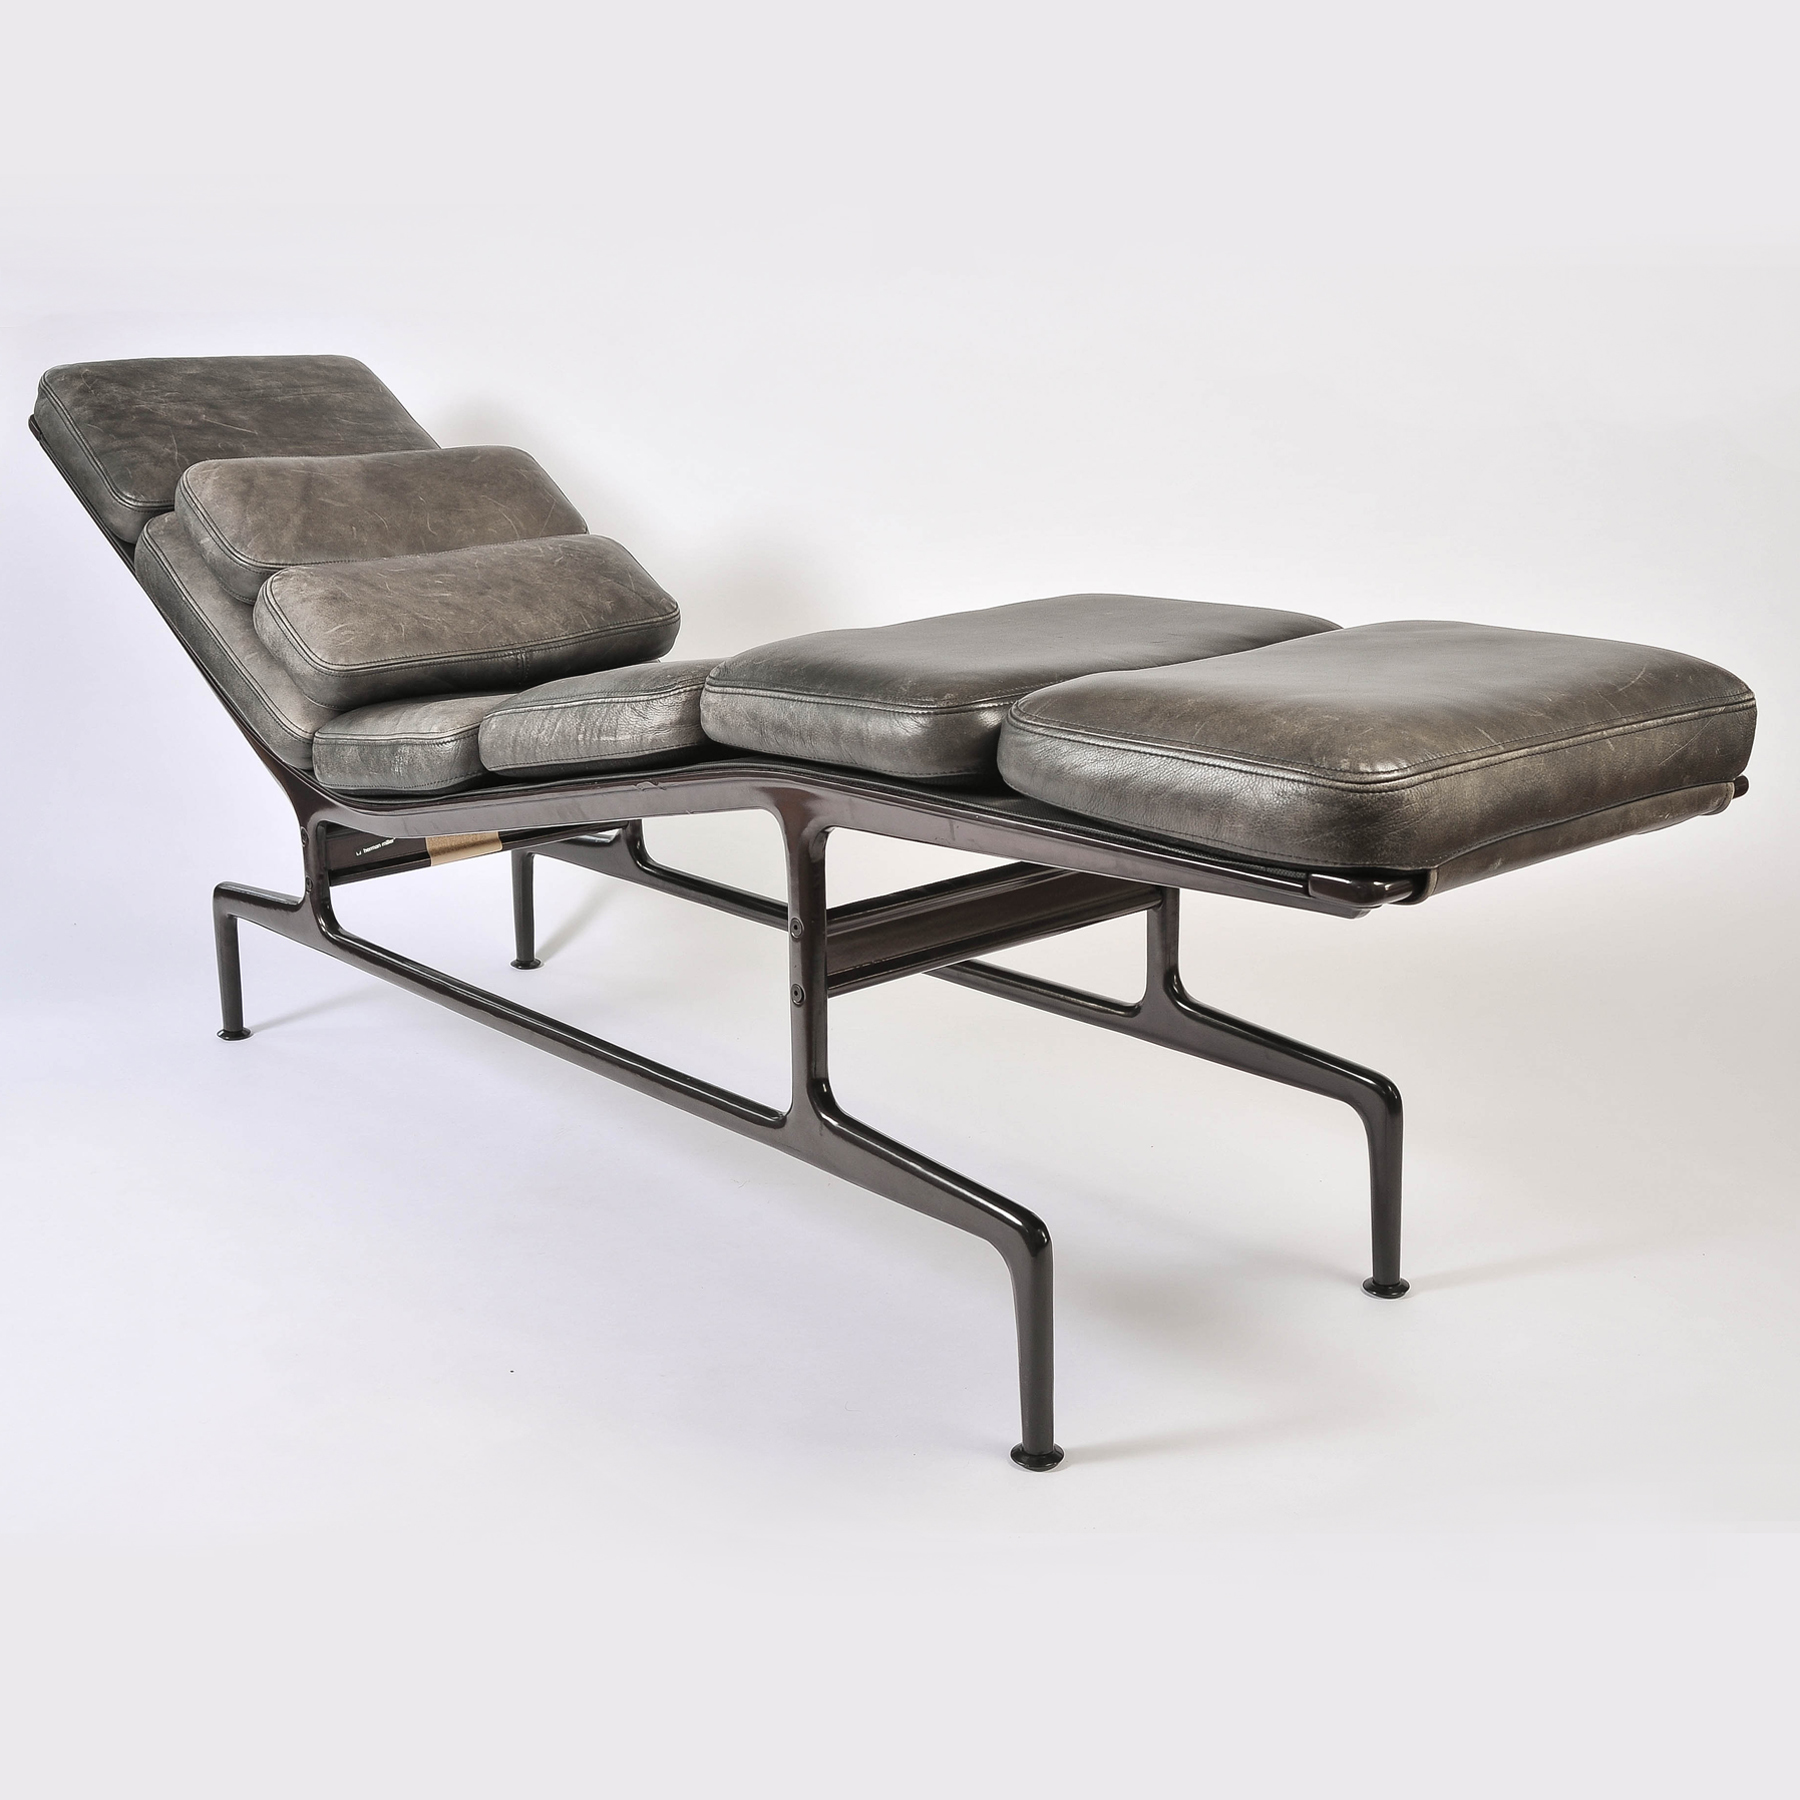 Charles Eames Billy Wilder Chaise Longue